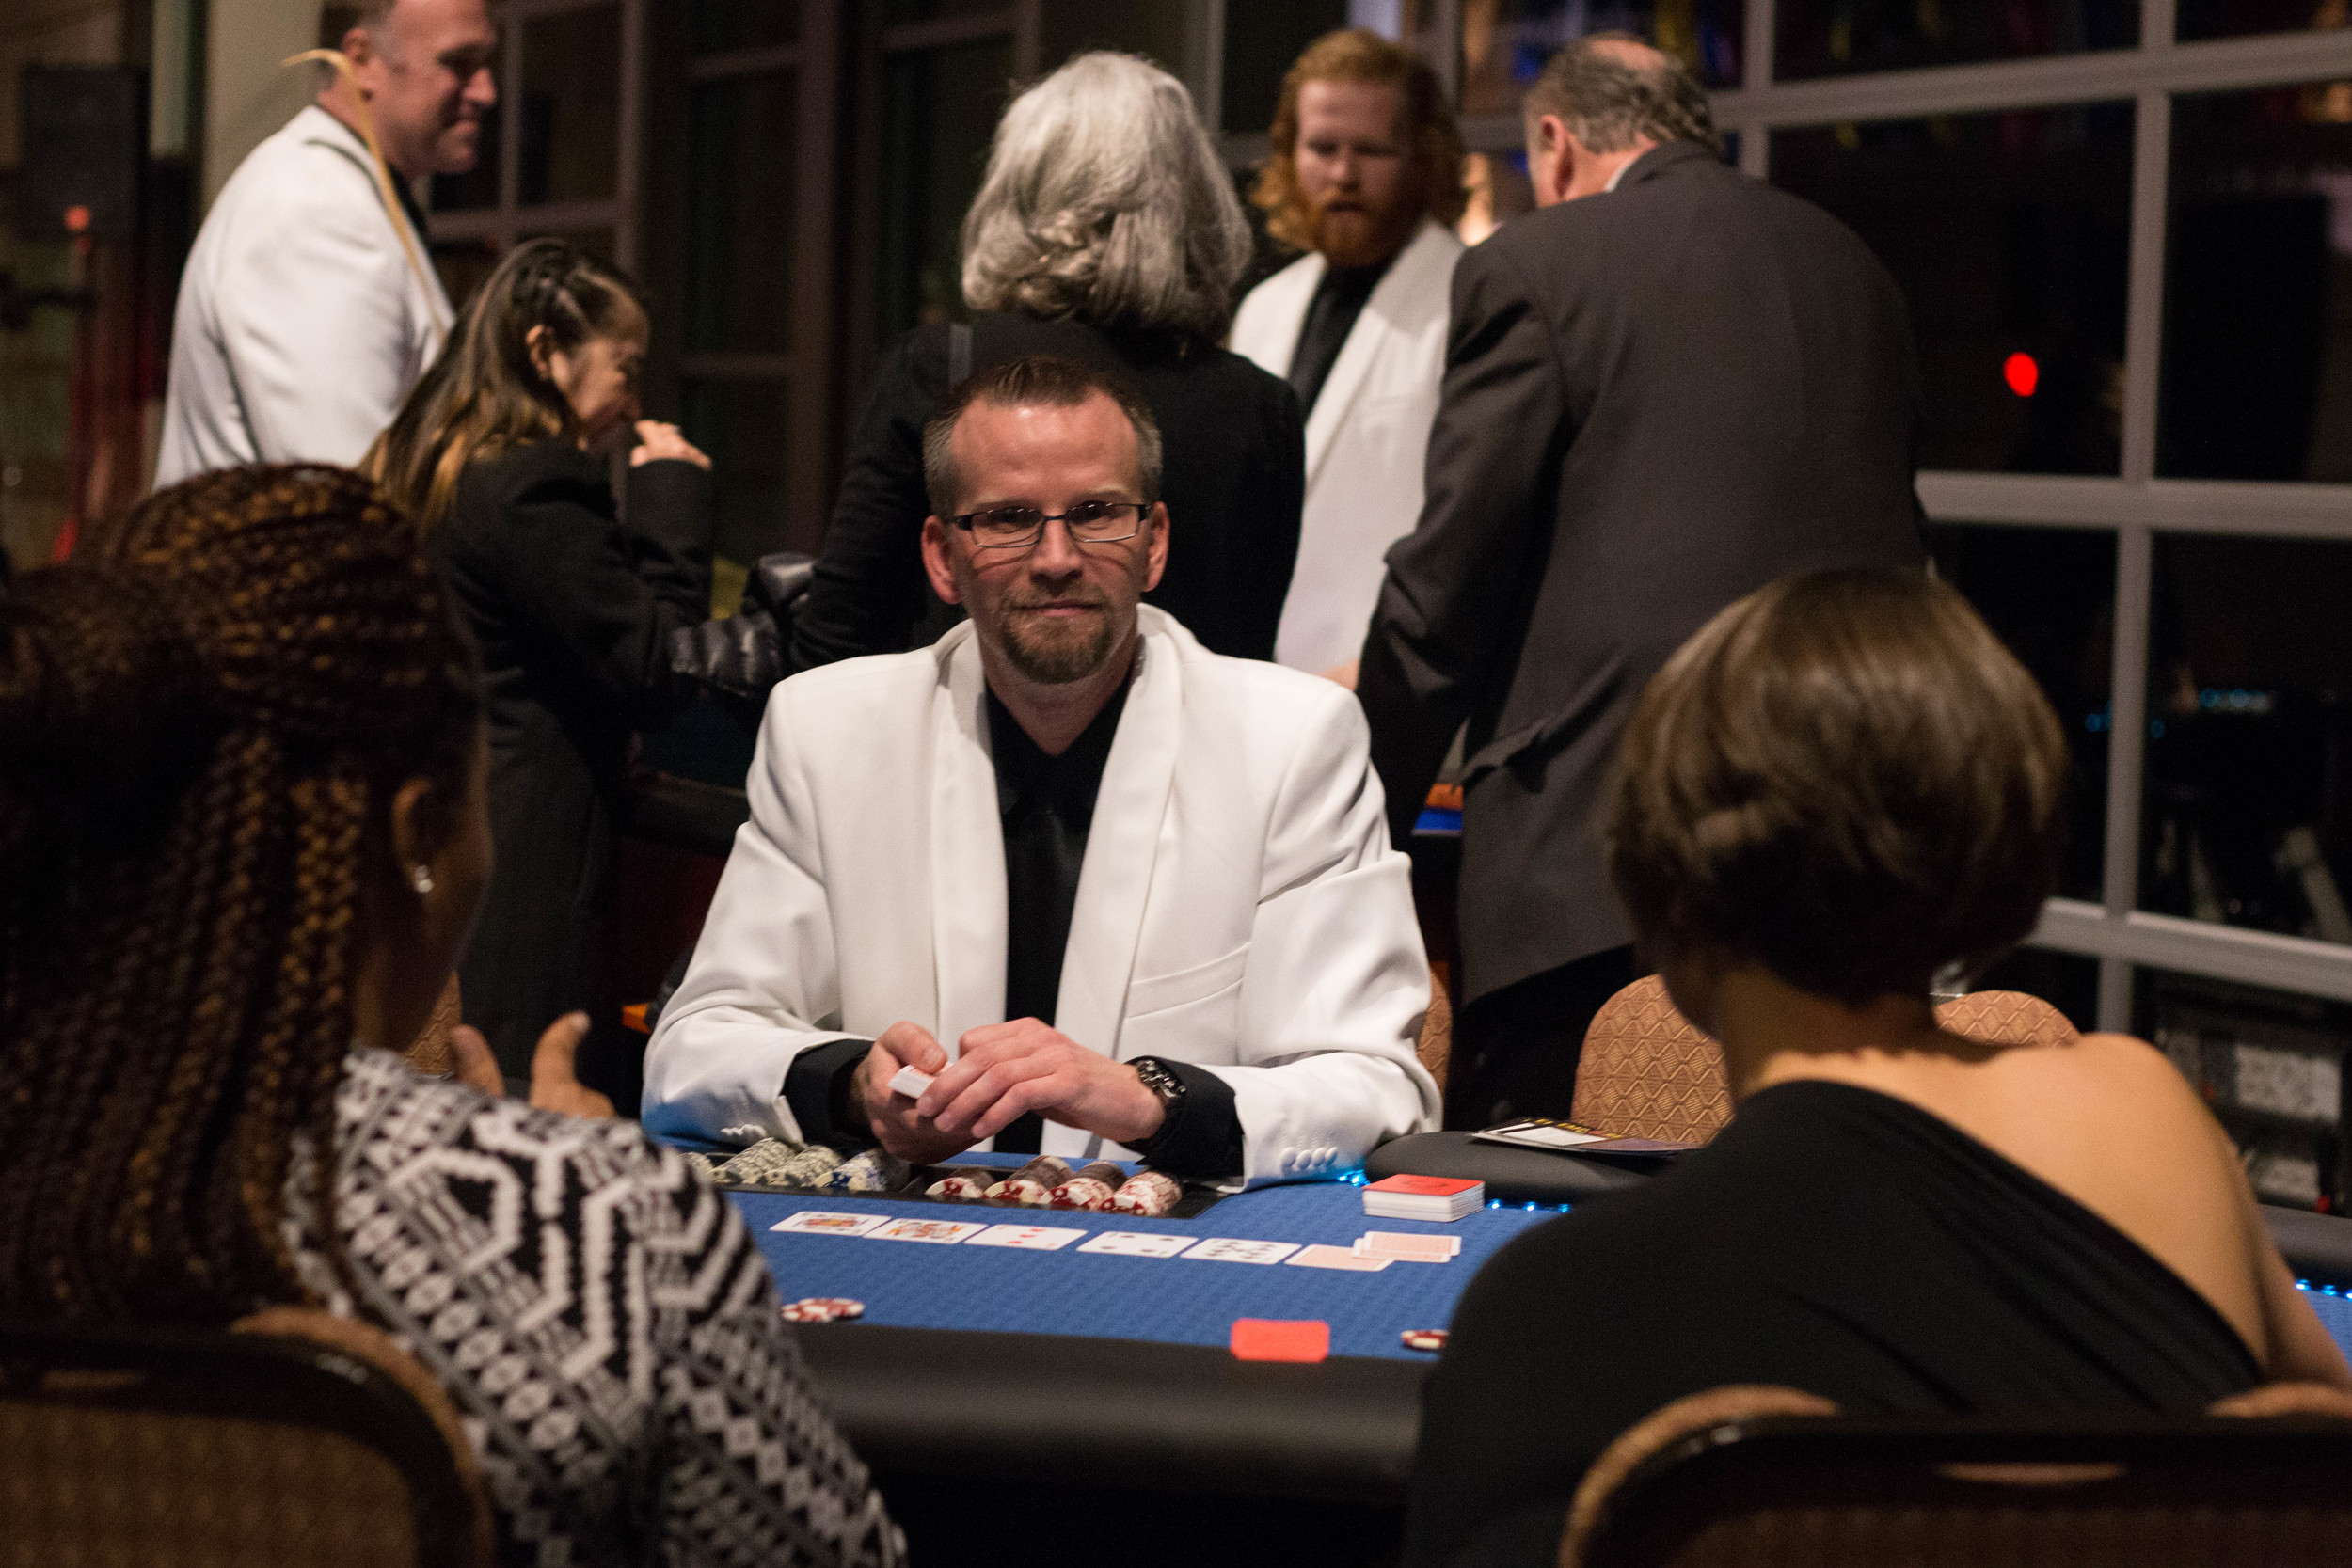 Travis, one of our poker dealers is dealing Texas Holdem for a fundraiser